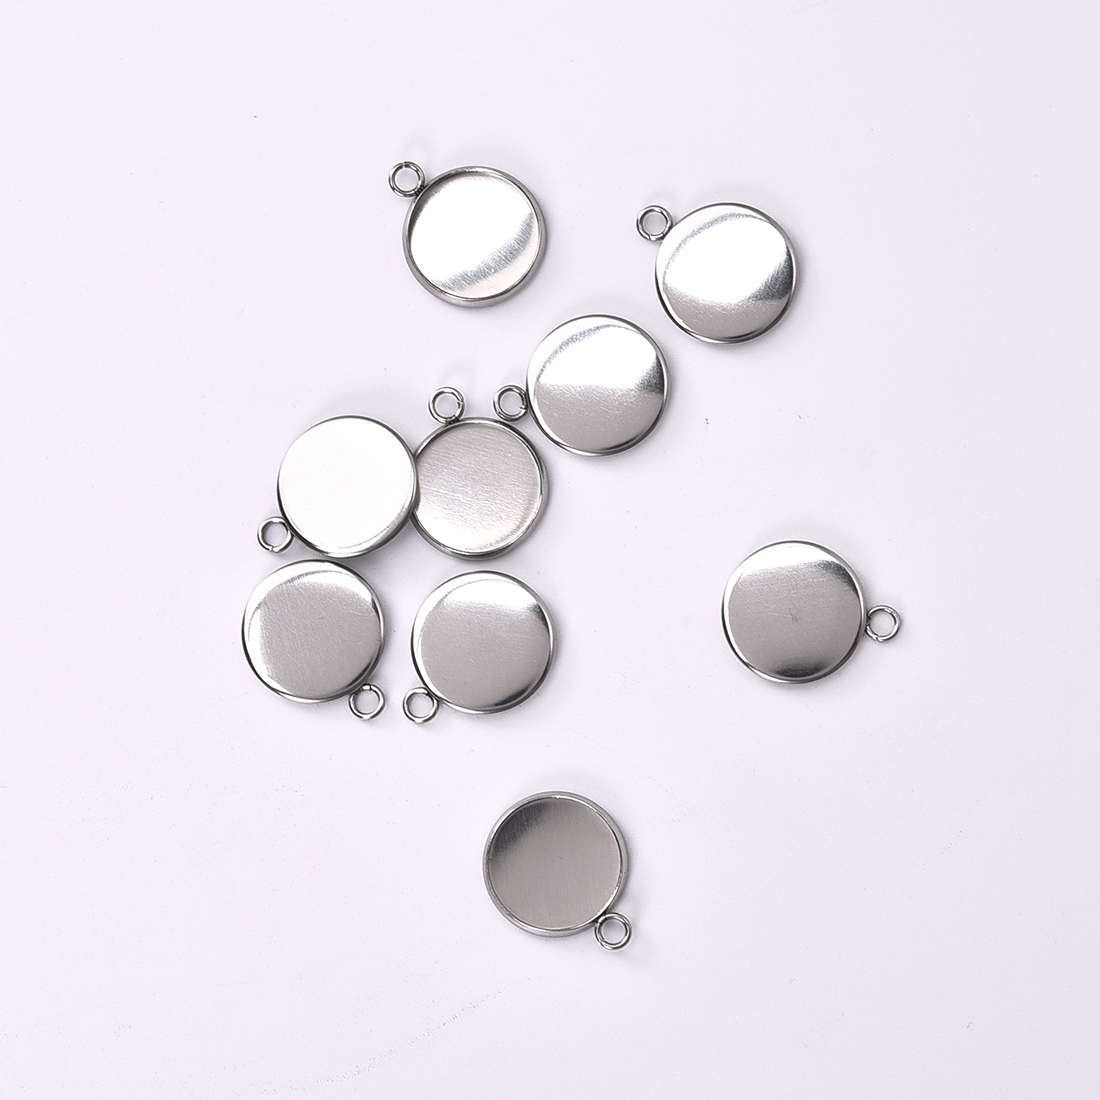 10Pcs/Pack Stainless Steel Round Pendant Base Setting Cabochon Glass Base Trays For DIY Necklace Jewelry Findings Sliver Color